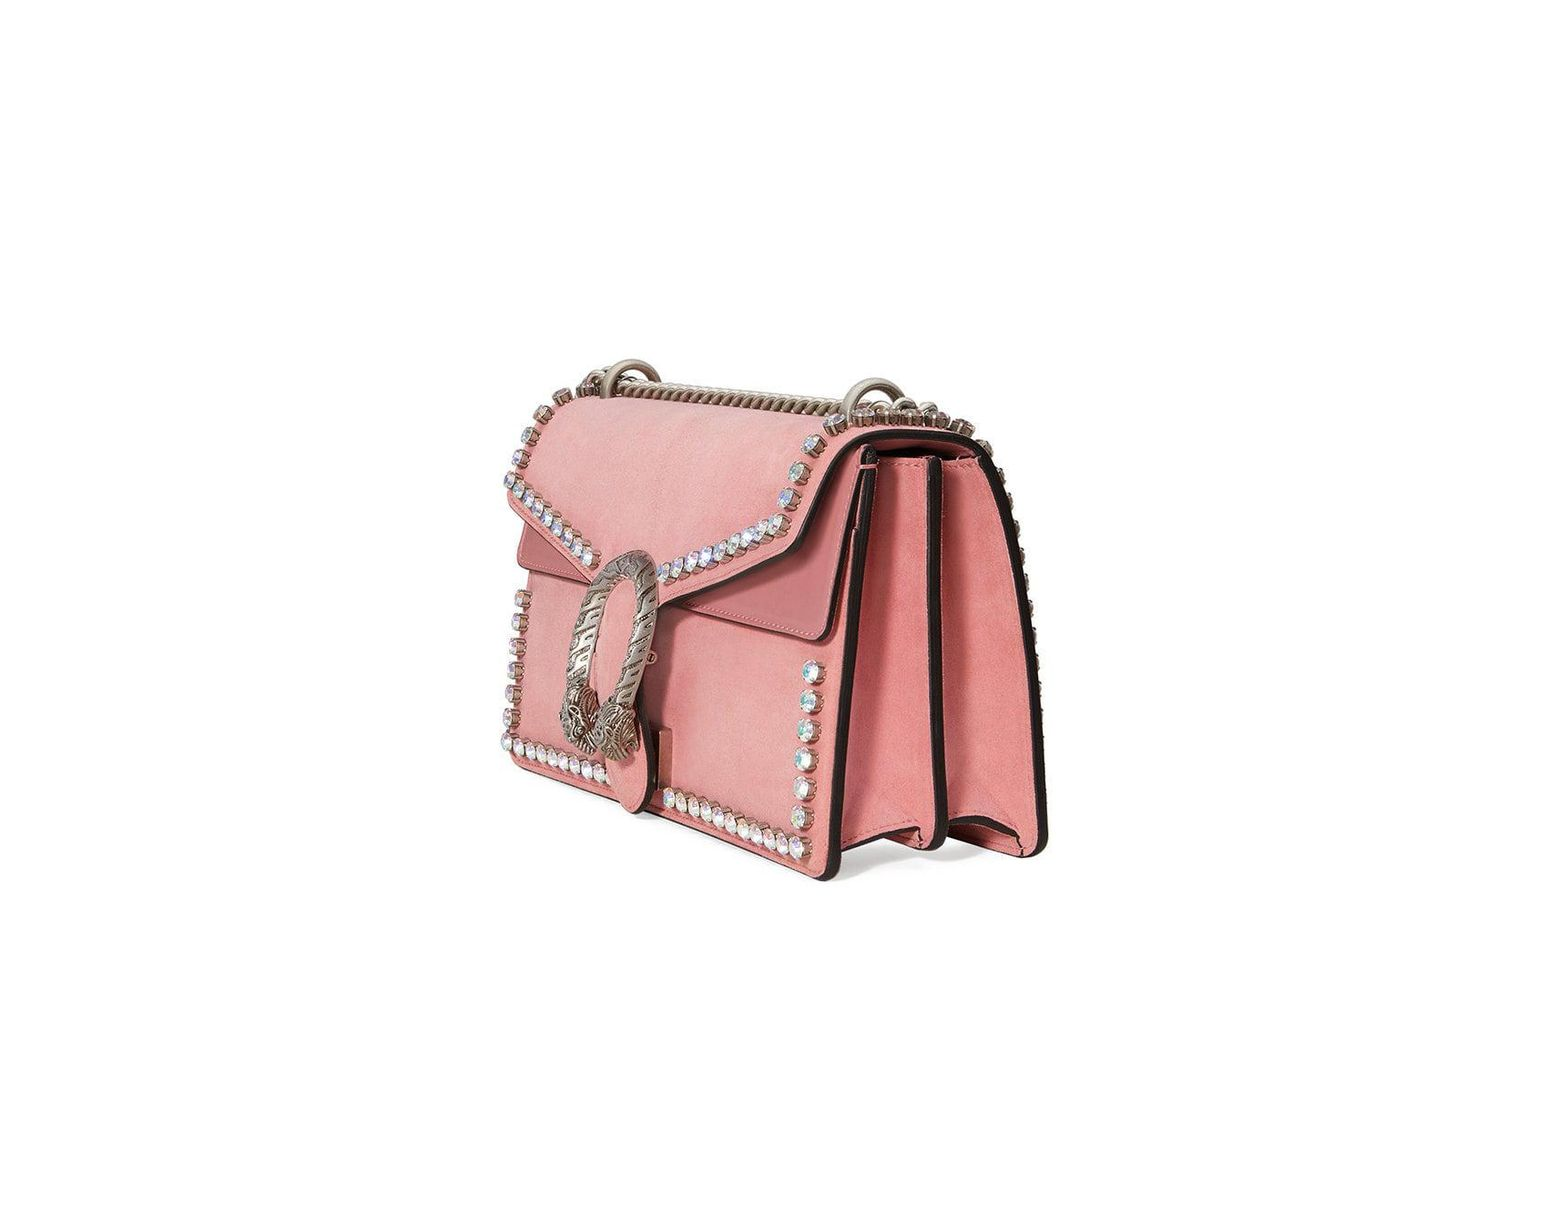 9ff7f0ceefab83 Gucci Dionysus Suede Shoulder Bag With Crystals in Pink - Save 10% - Lyst